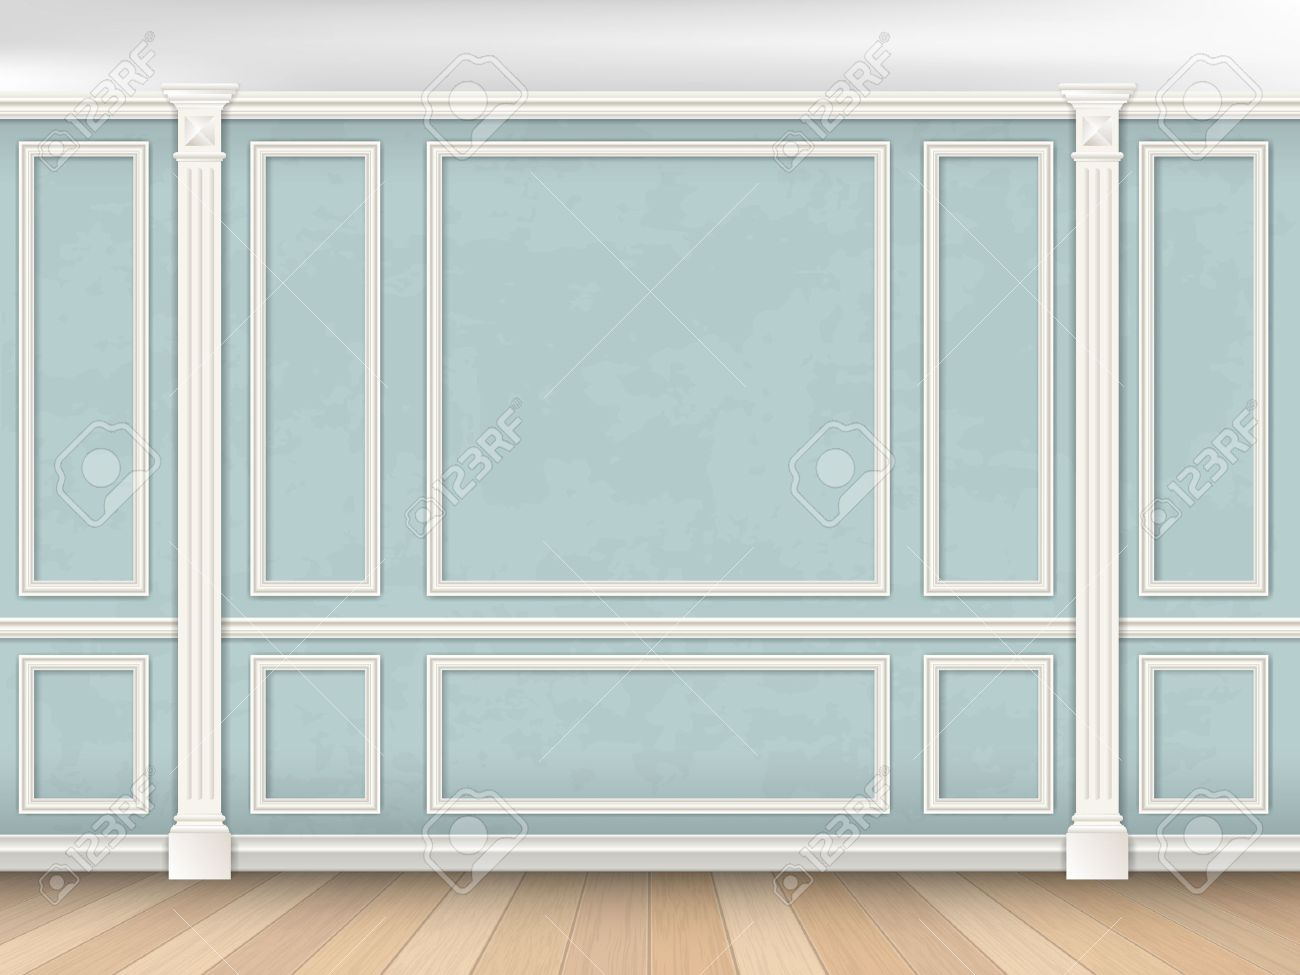 Blue wall interior in classical style with pilasters and moldings. Architectural background. Stock Vector - 49591214